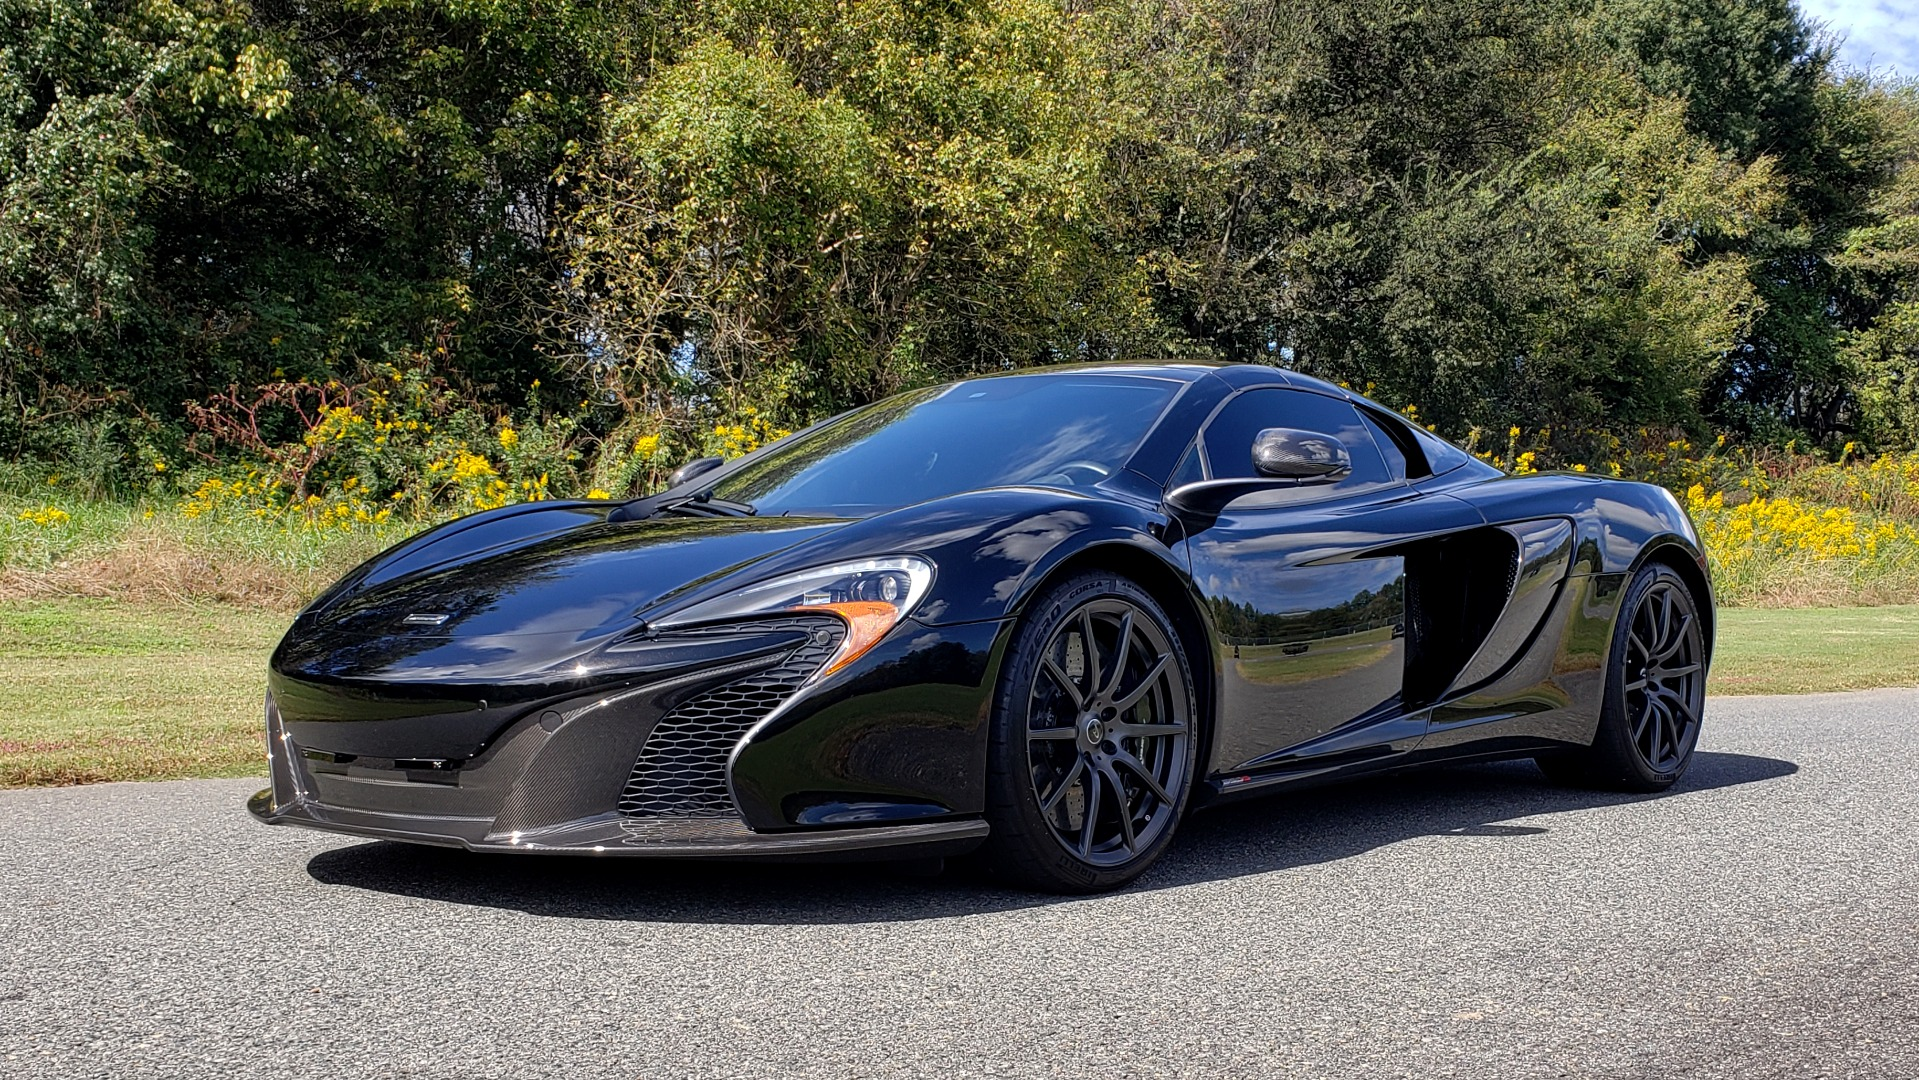 Used 2016 McLaren 650S SPIDER / 641HP / PARK SENSORS / LOW MILES / 1-OWNER for sale Sold at Formula Imports in Charlotte NC 28227 1